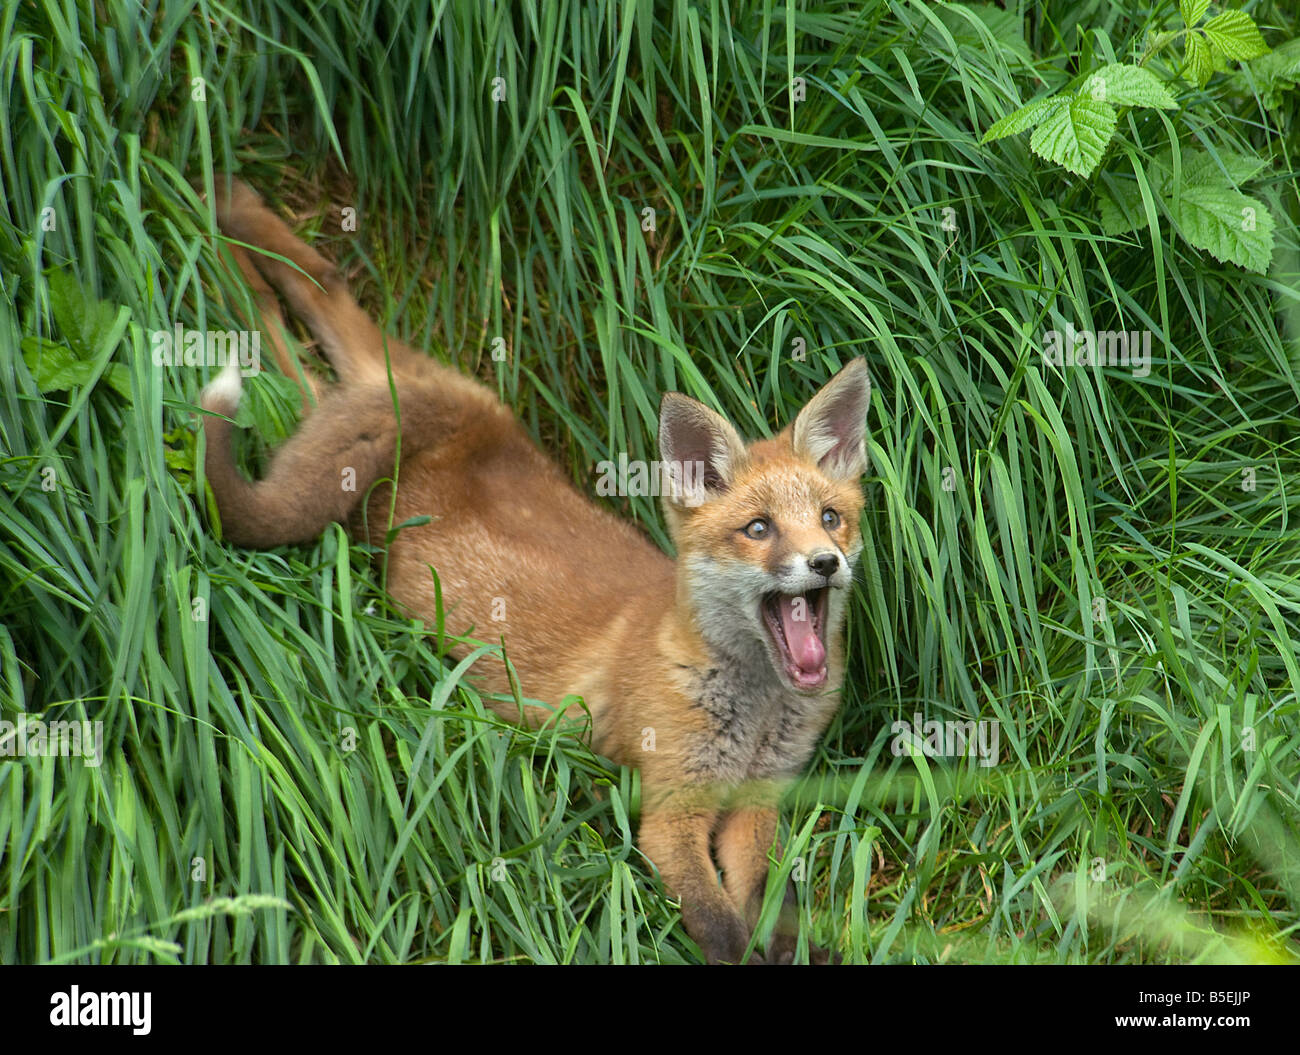 Red fox cub Vulpes vulpes relaxing and yawning - Stock Image